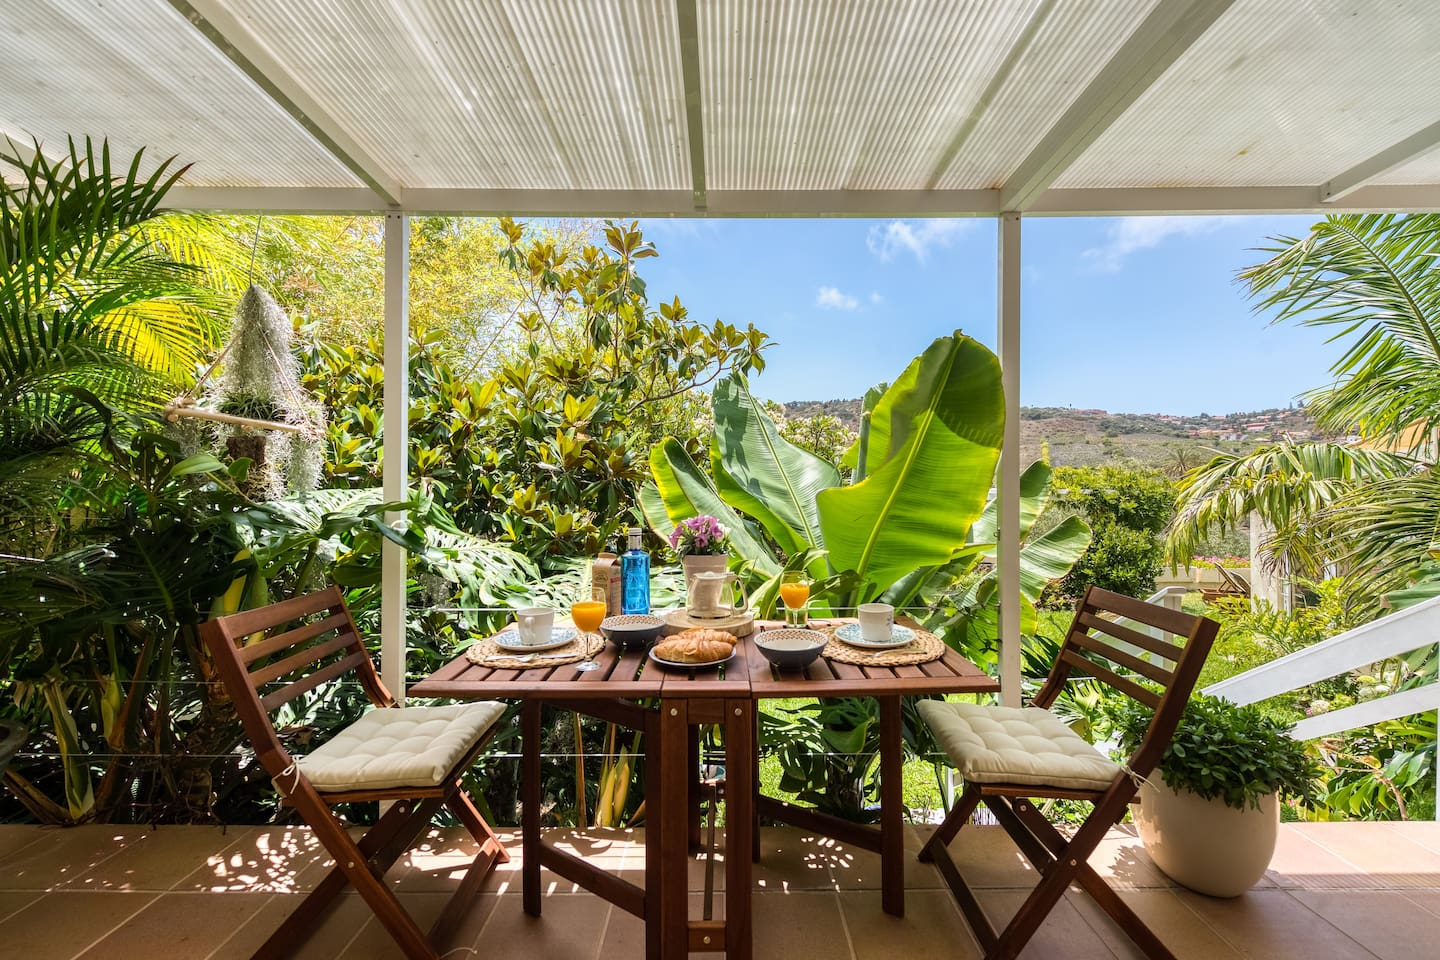 Patio - Enjoy a breakfast or meal outside and enjoy the relaxing views of the private garden area and surrounding landscape.